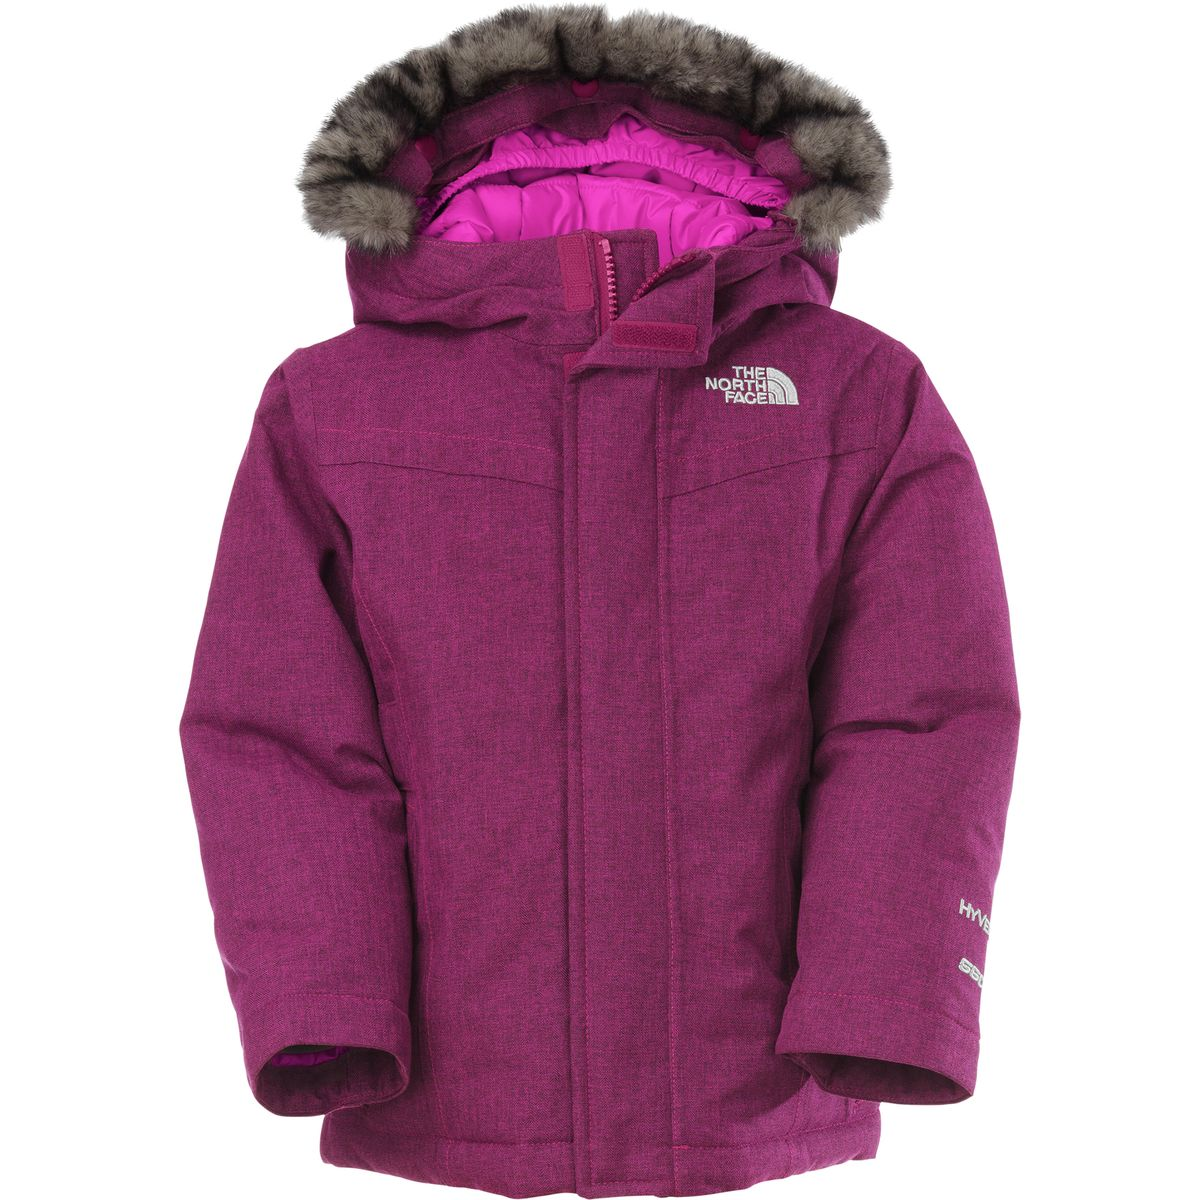 The North Face Greenland Down Jacket - Toddler Girls